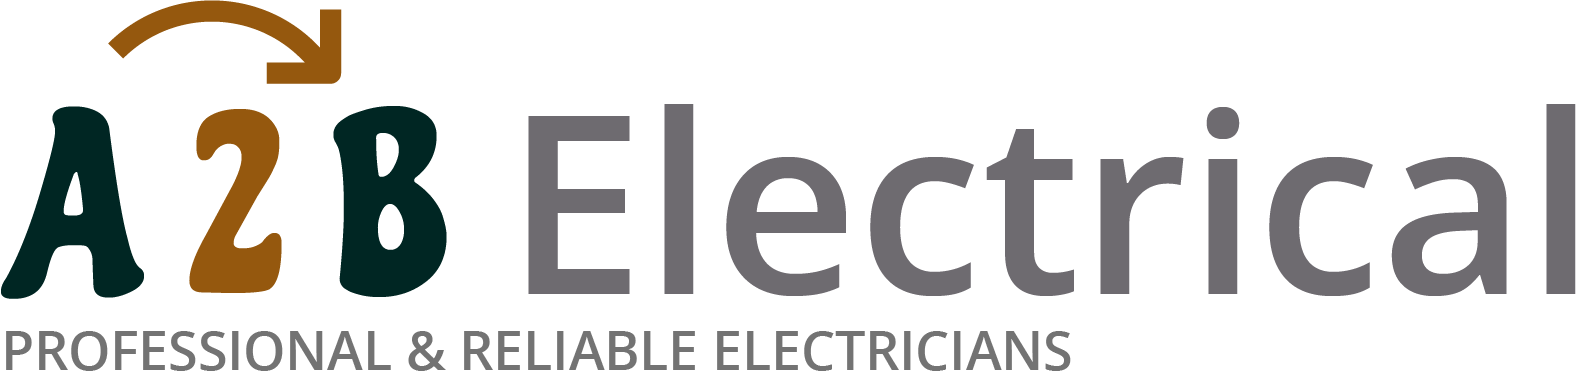 If you have electrical wiring problems in Haringey, we can provide an electrician to have a look for you.